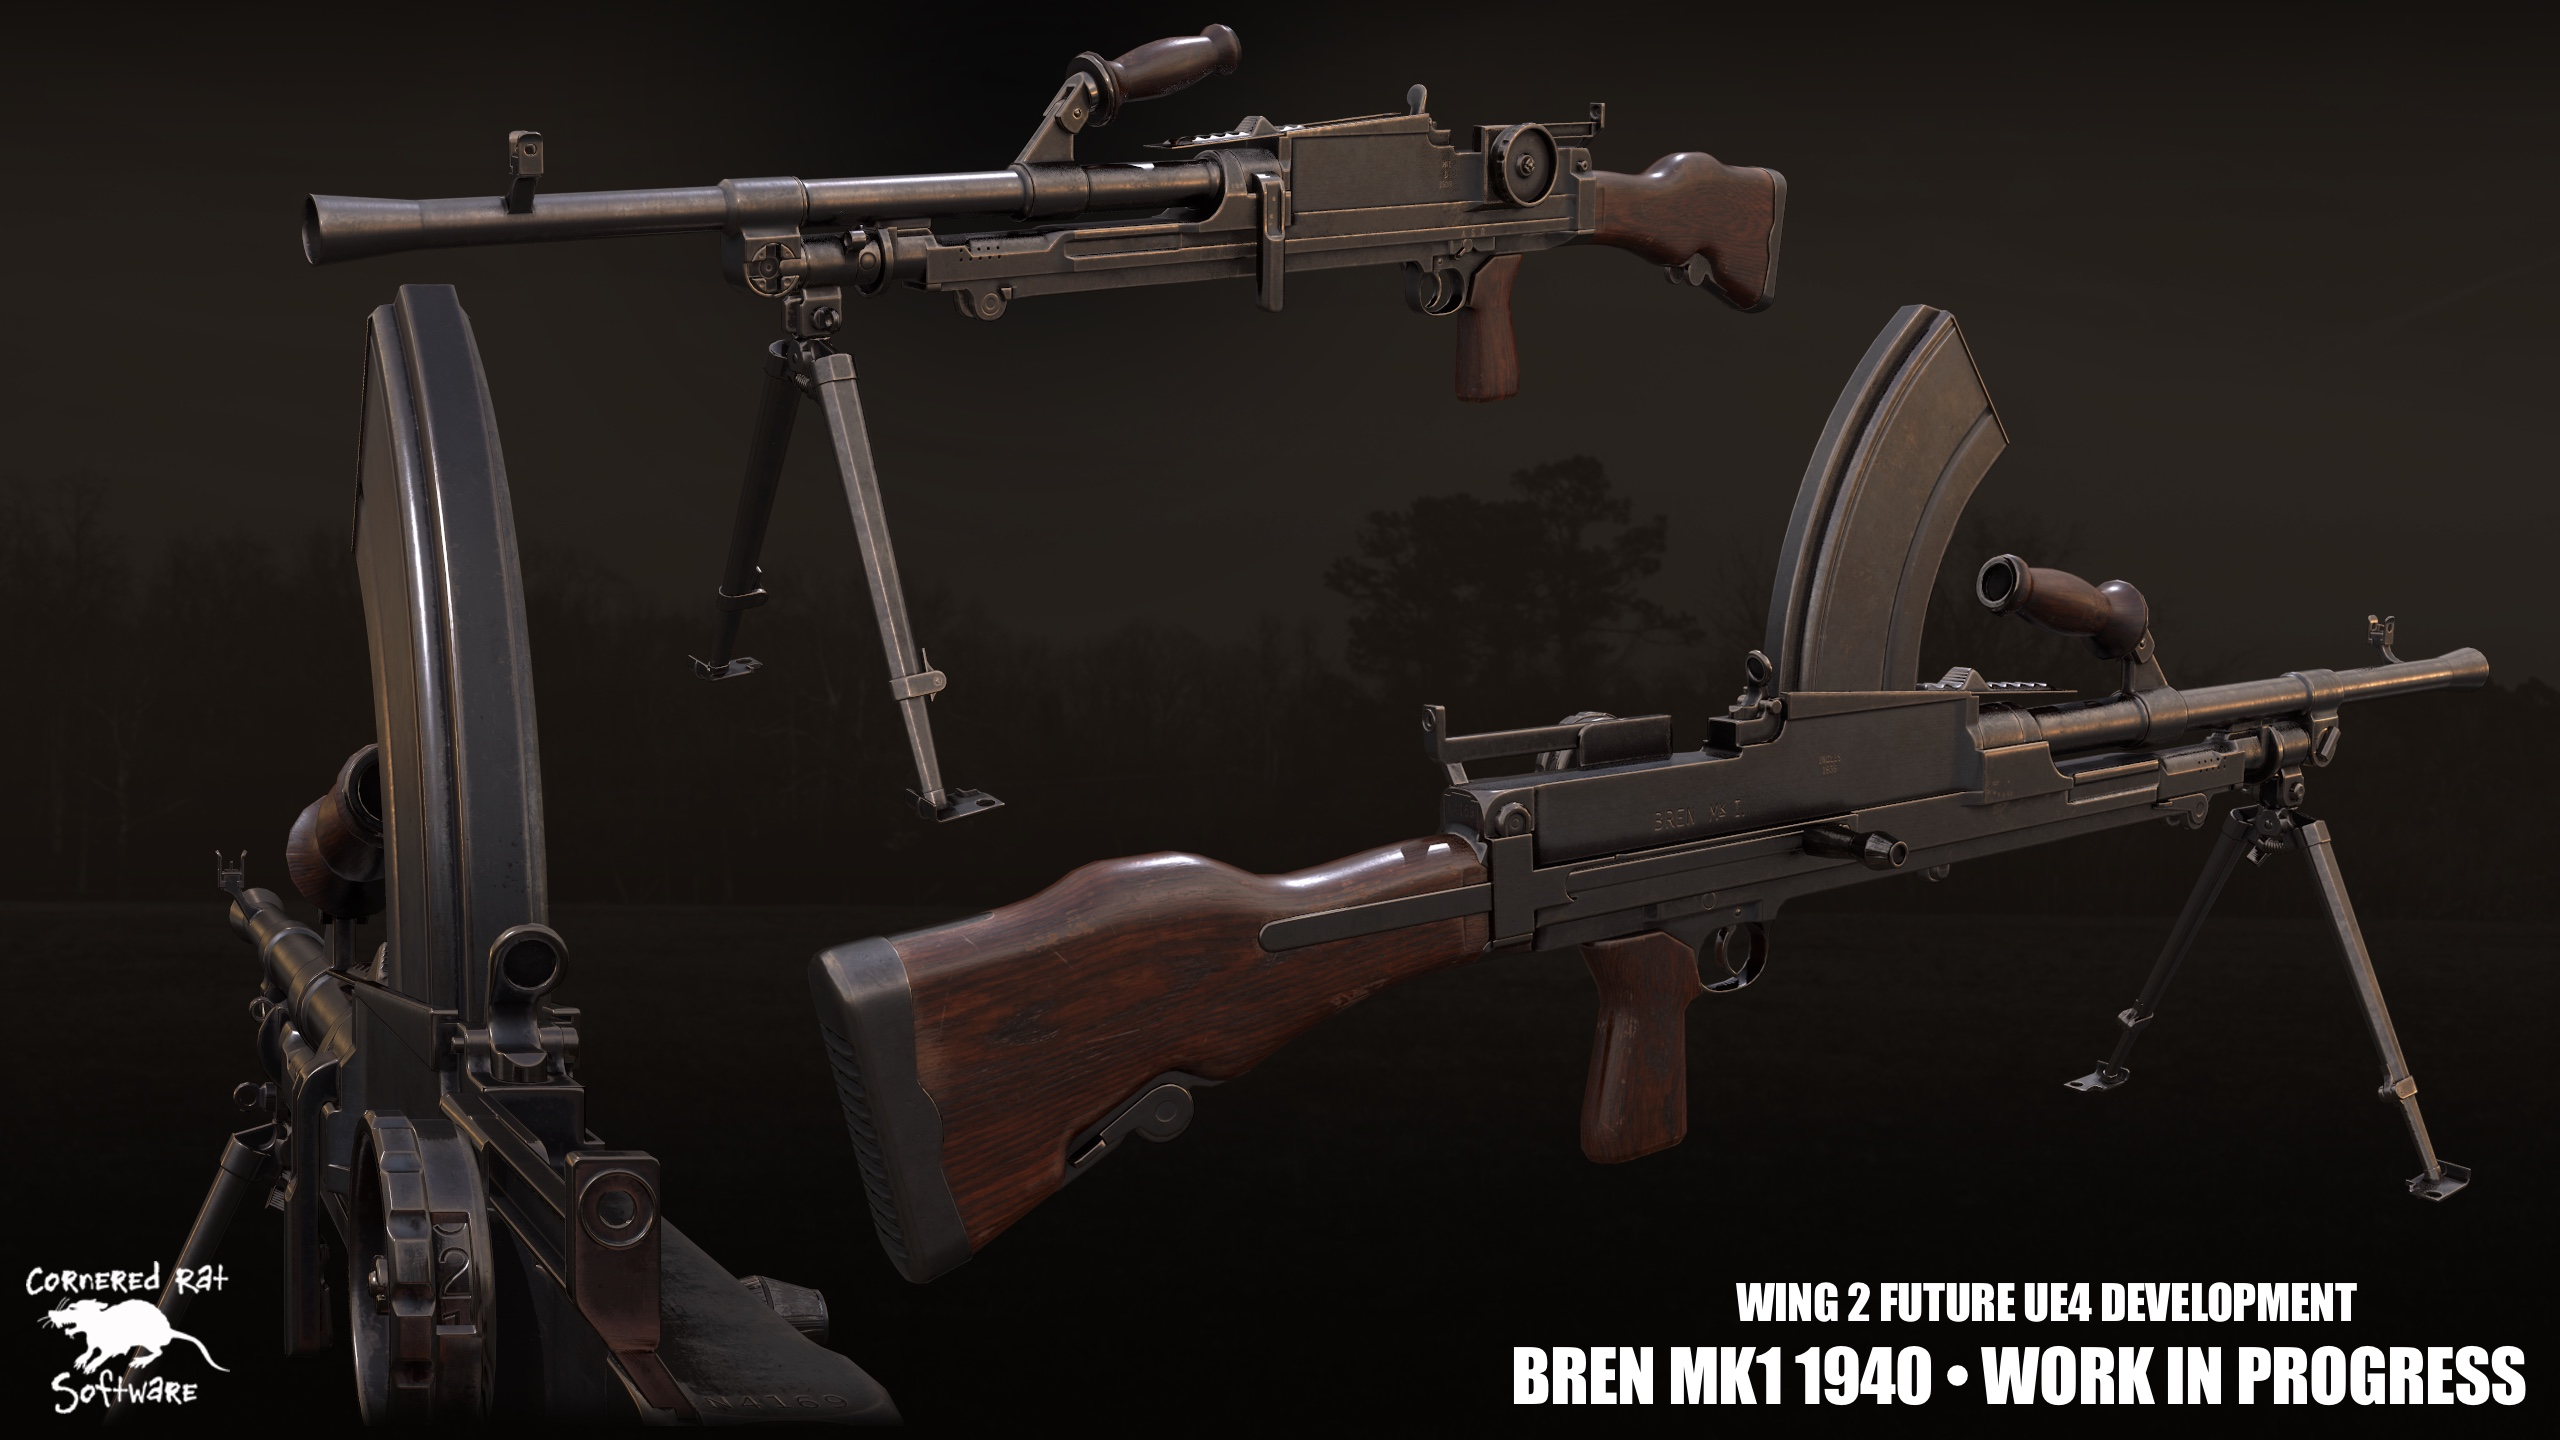 Introducing our new Bren Gun for the British soldier.